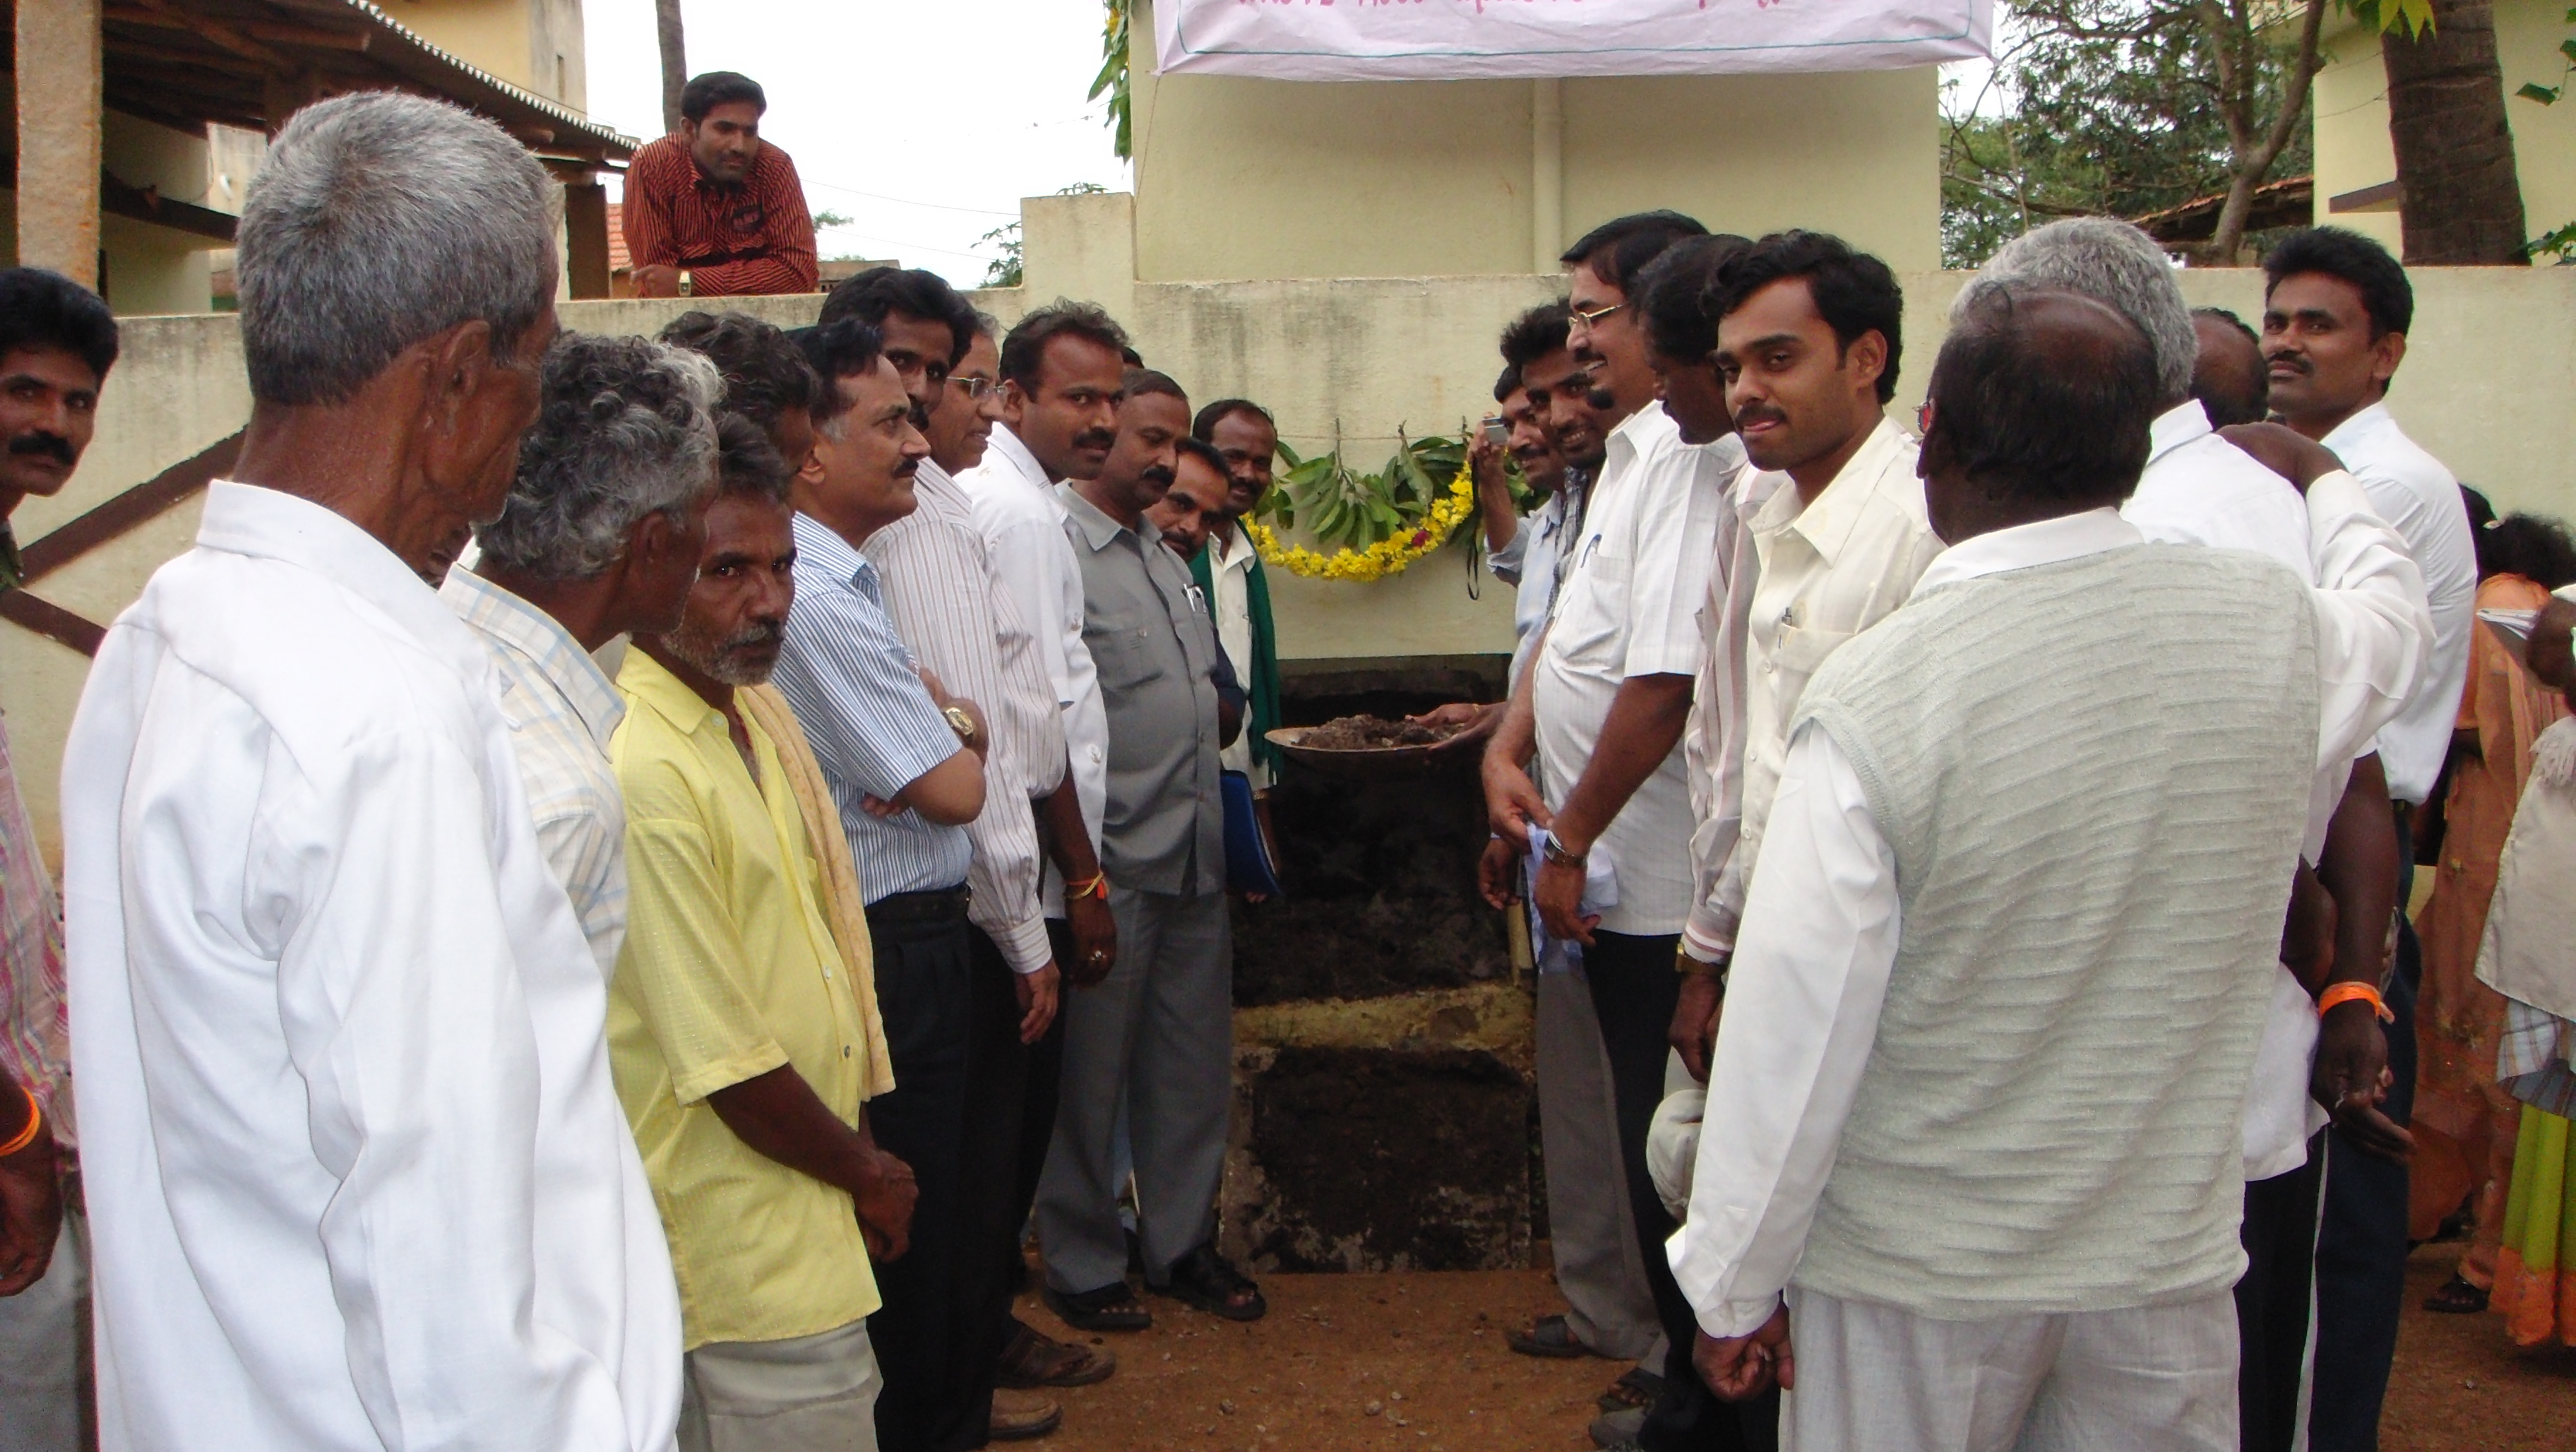 Opening ceremony of ecosan toilet compost pit